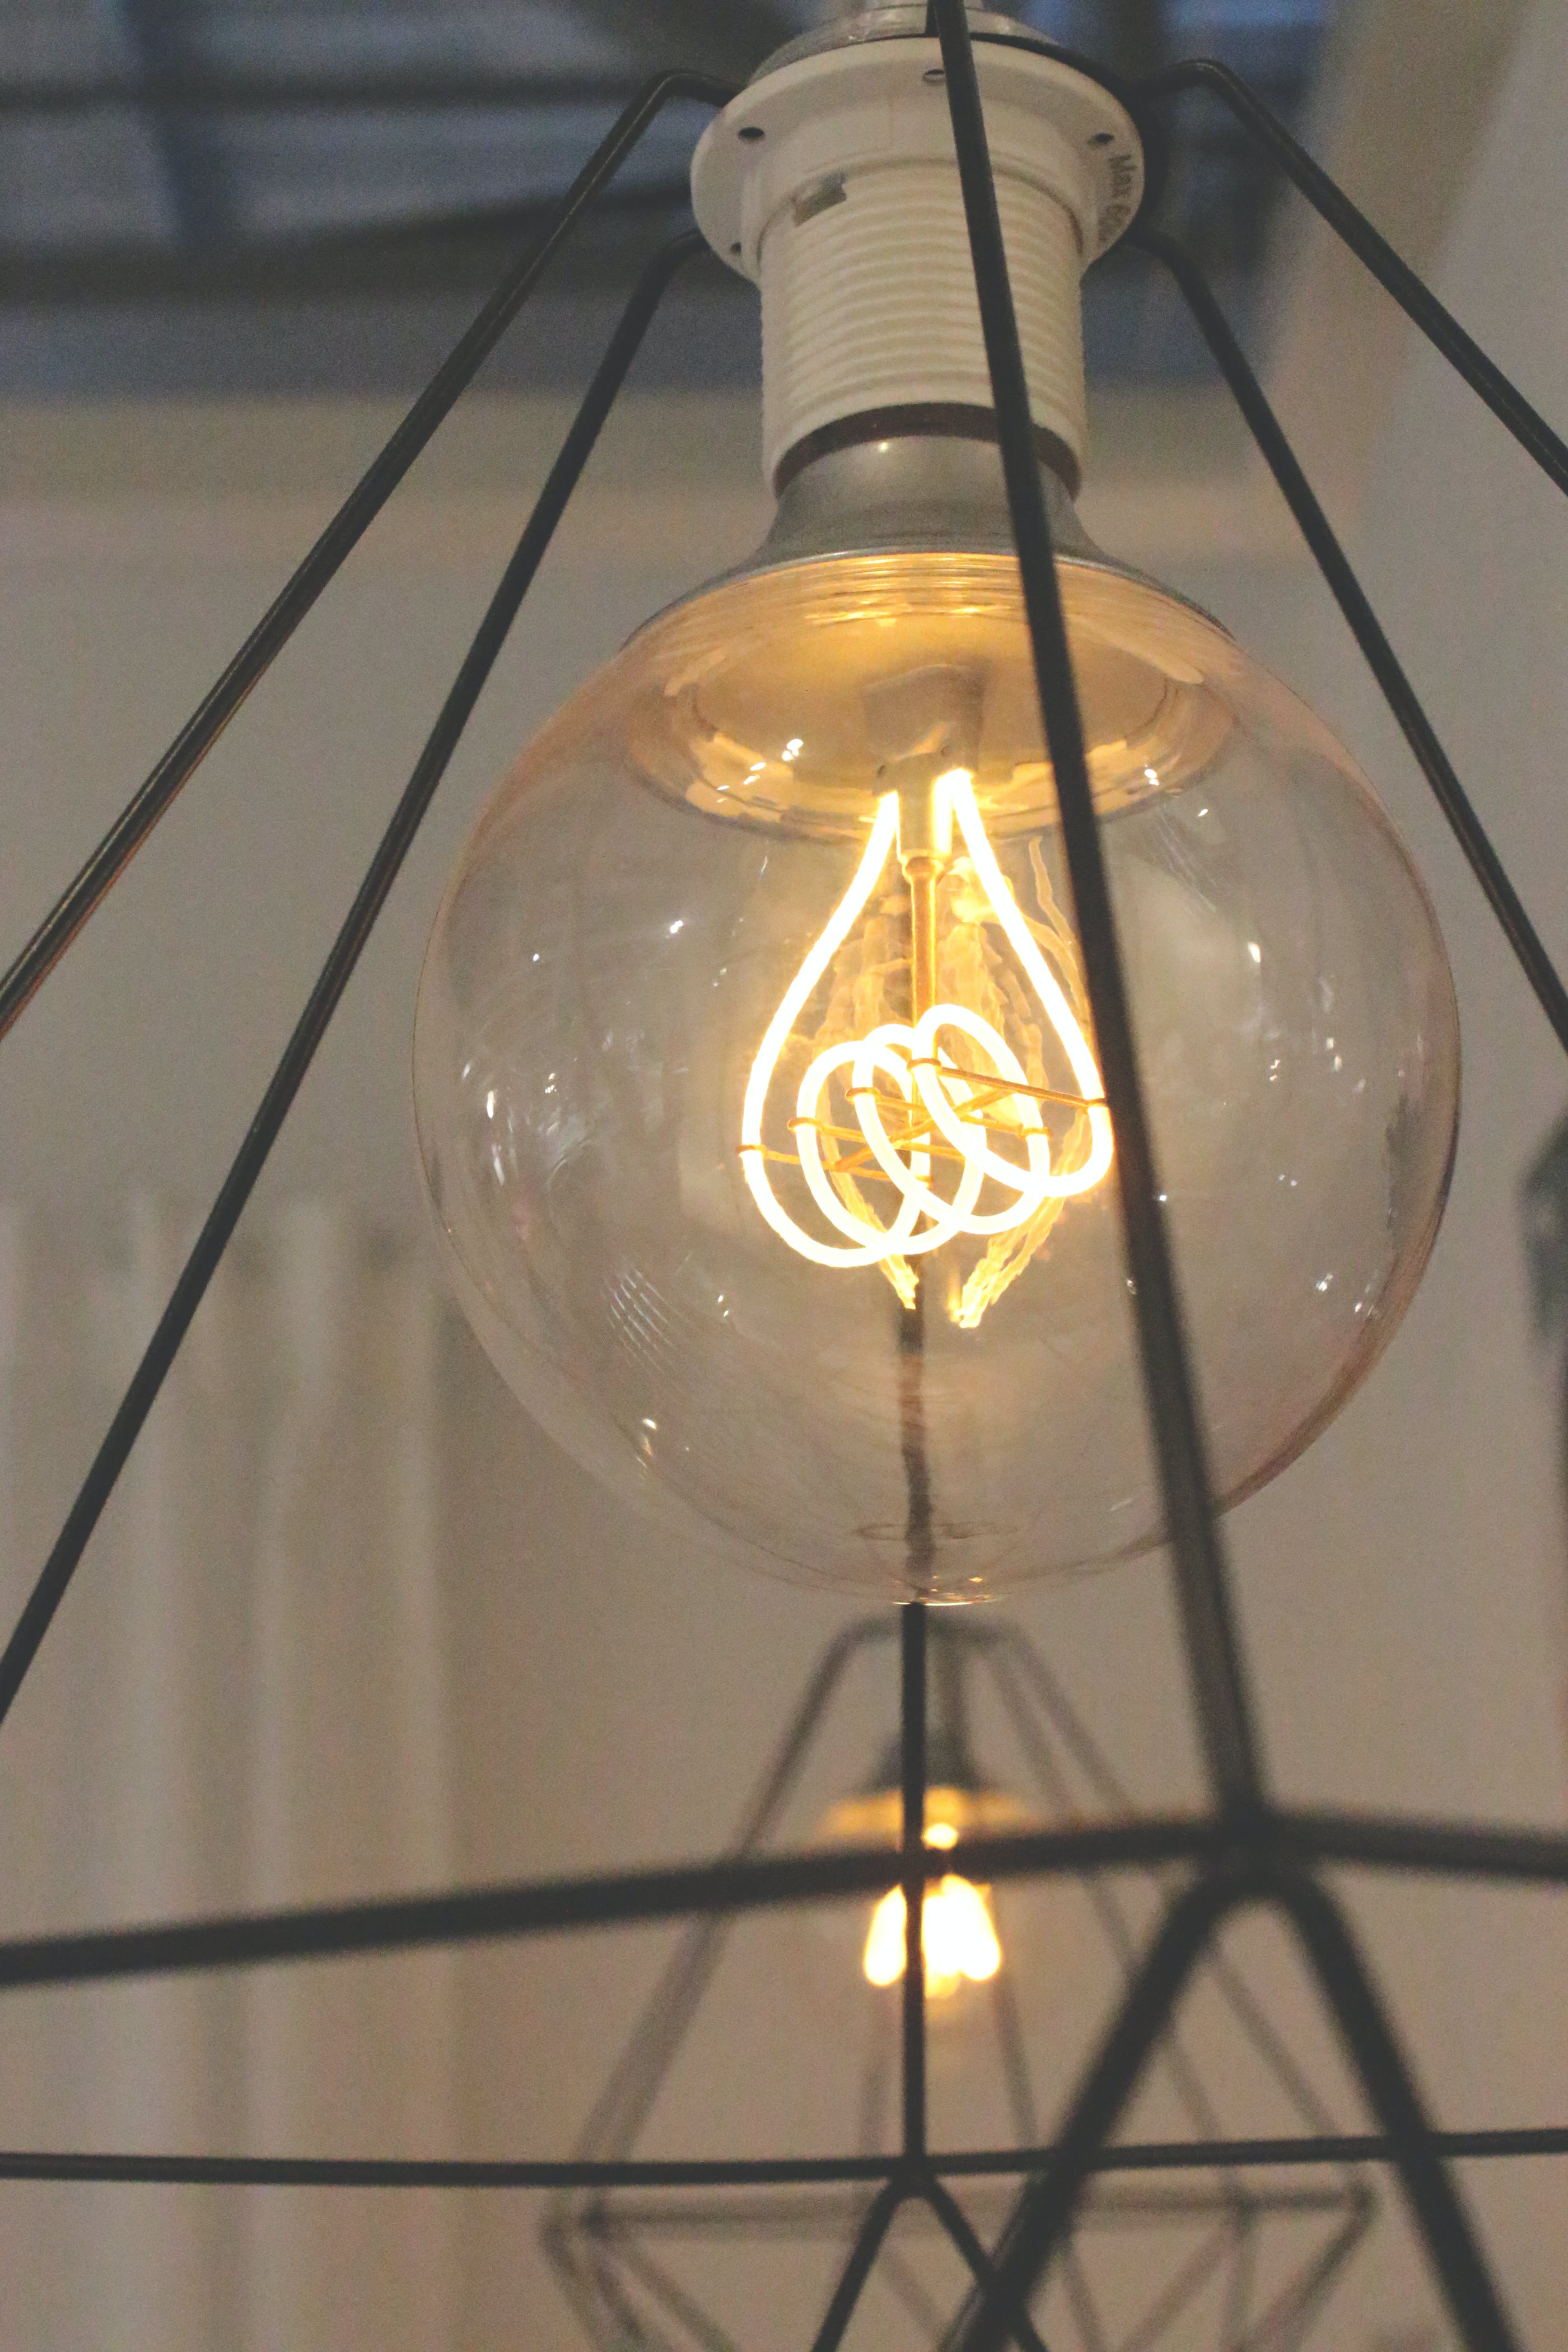 Free stock photo of abstract, bright, bulb, creative